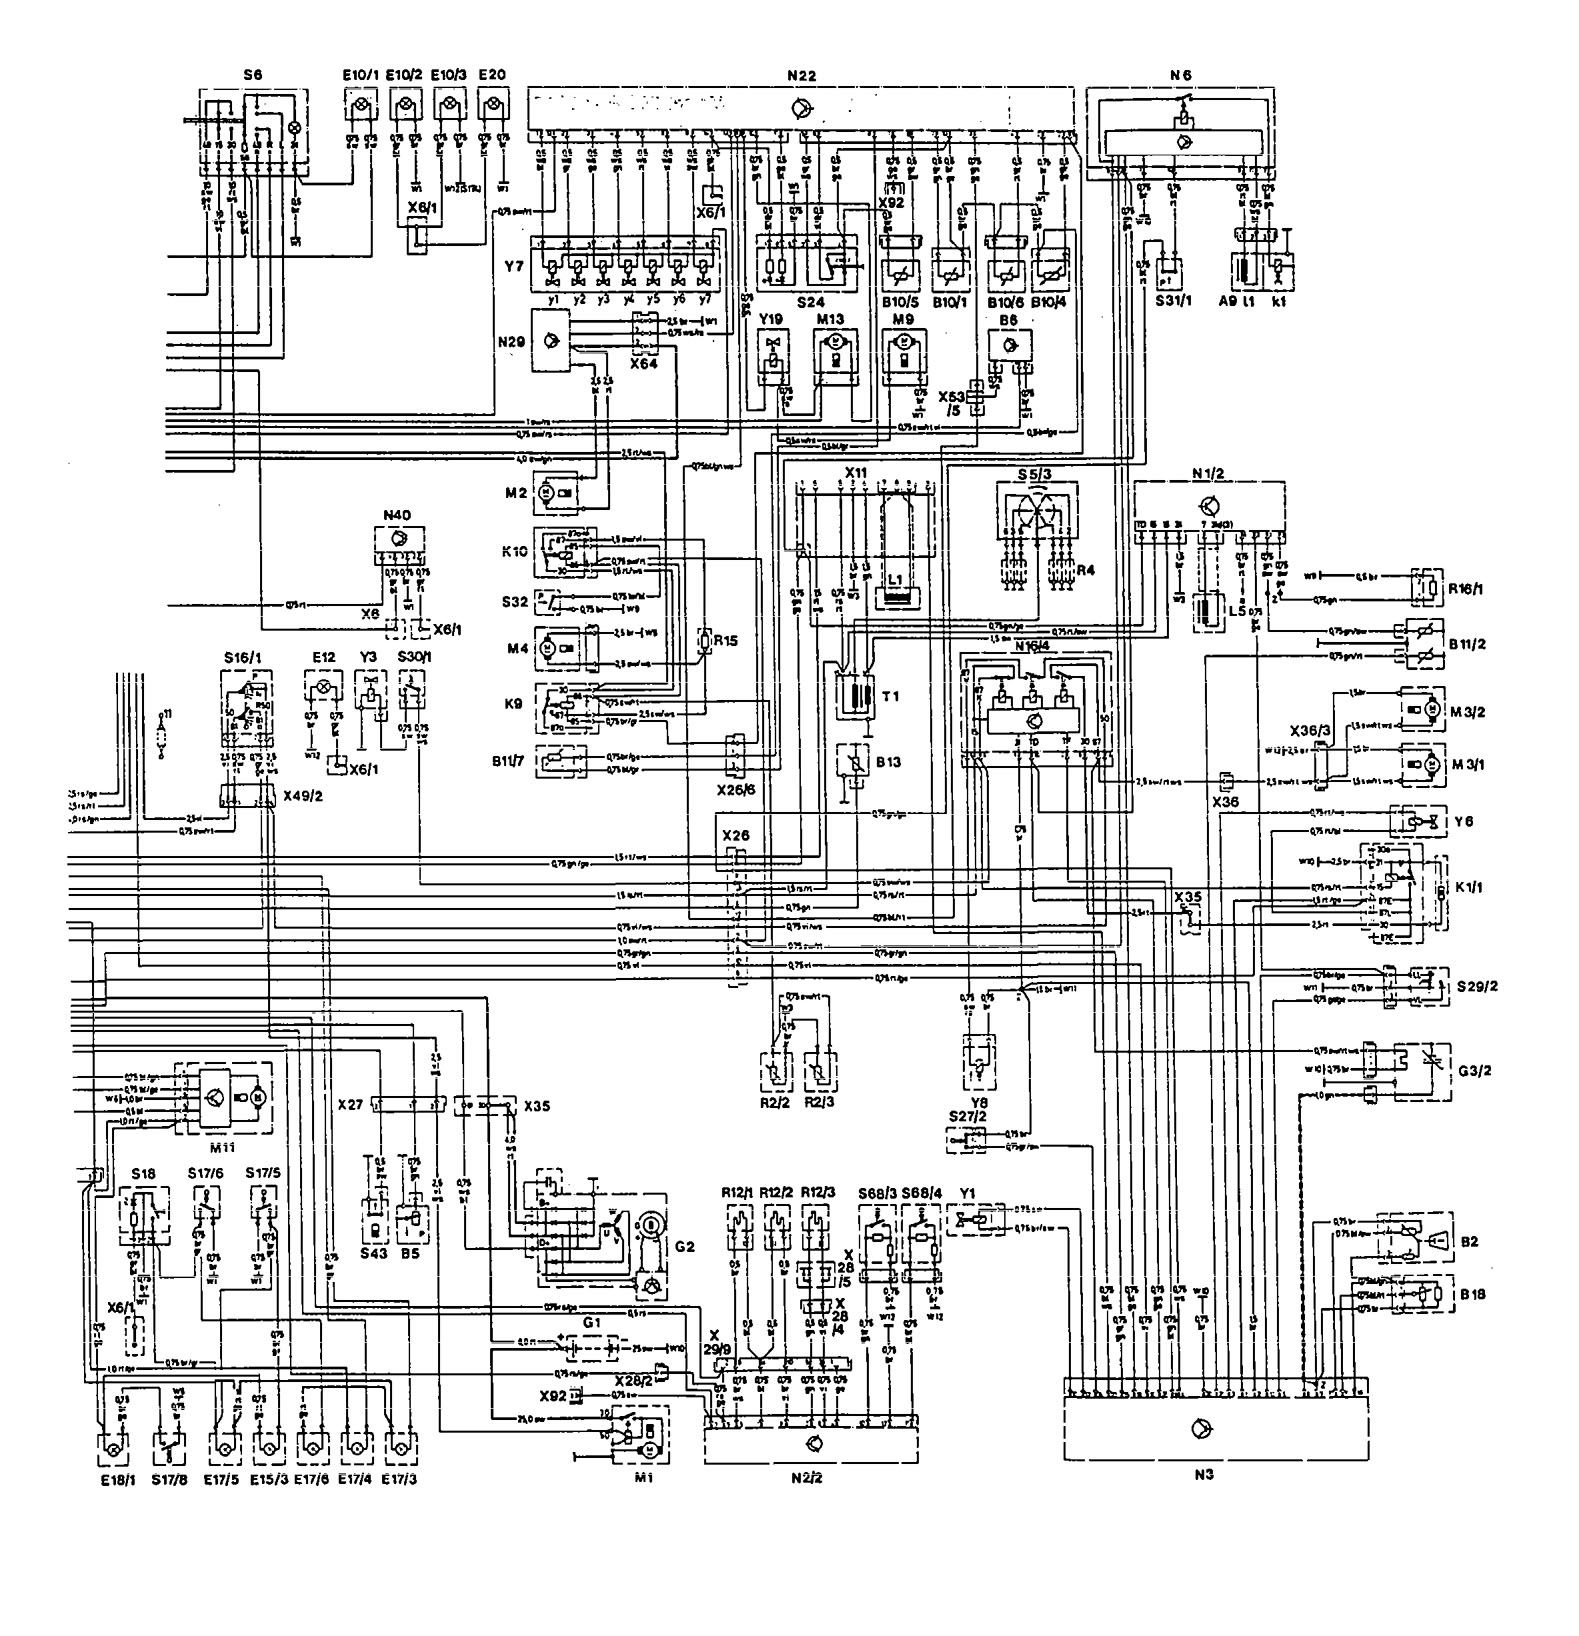 Mercede S430 Fuse Diagram Ignition